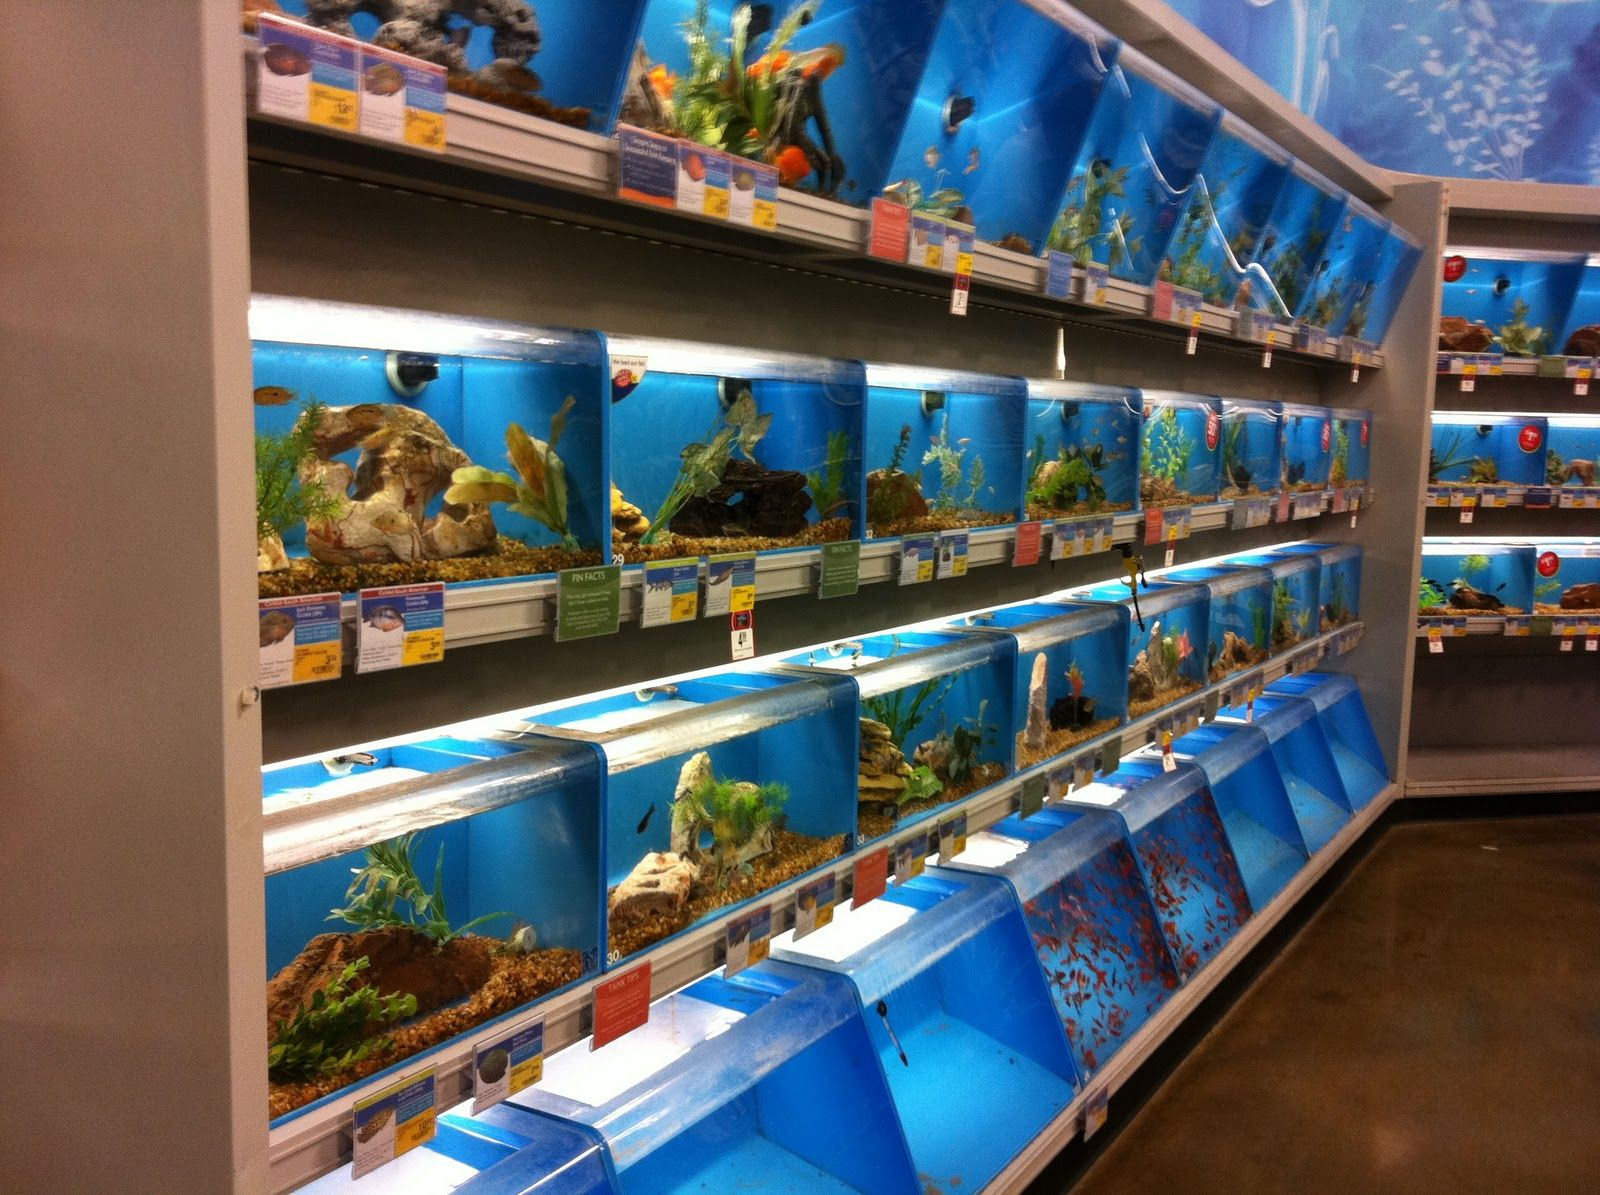 Petsmart all i want is to be where the fish are Petsmart